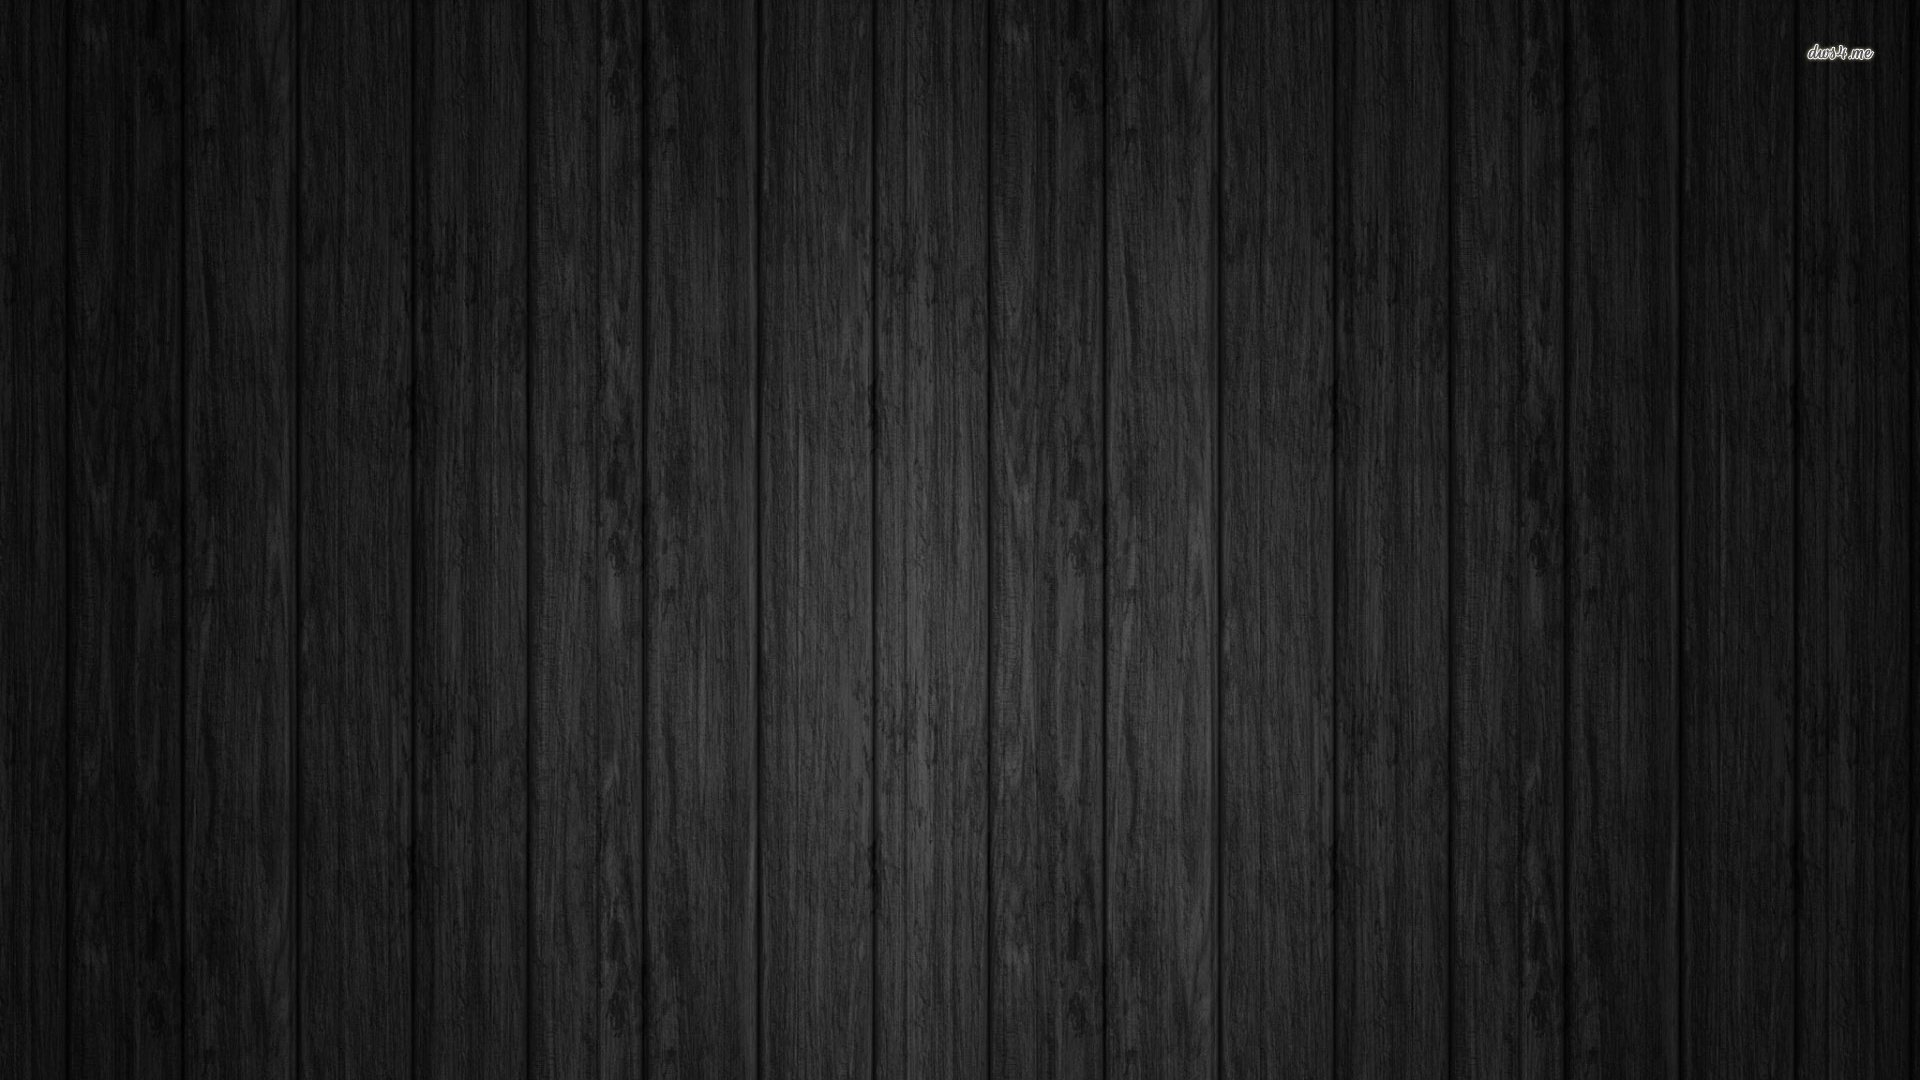 Wood Leather Wallpaper - WallpaperSafari